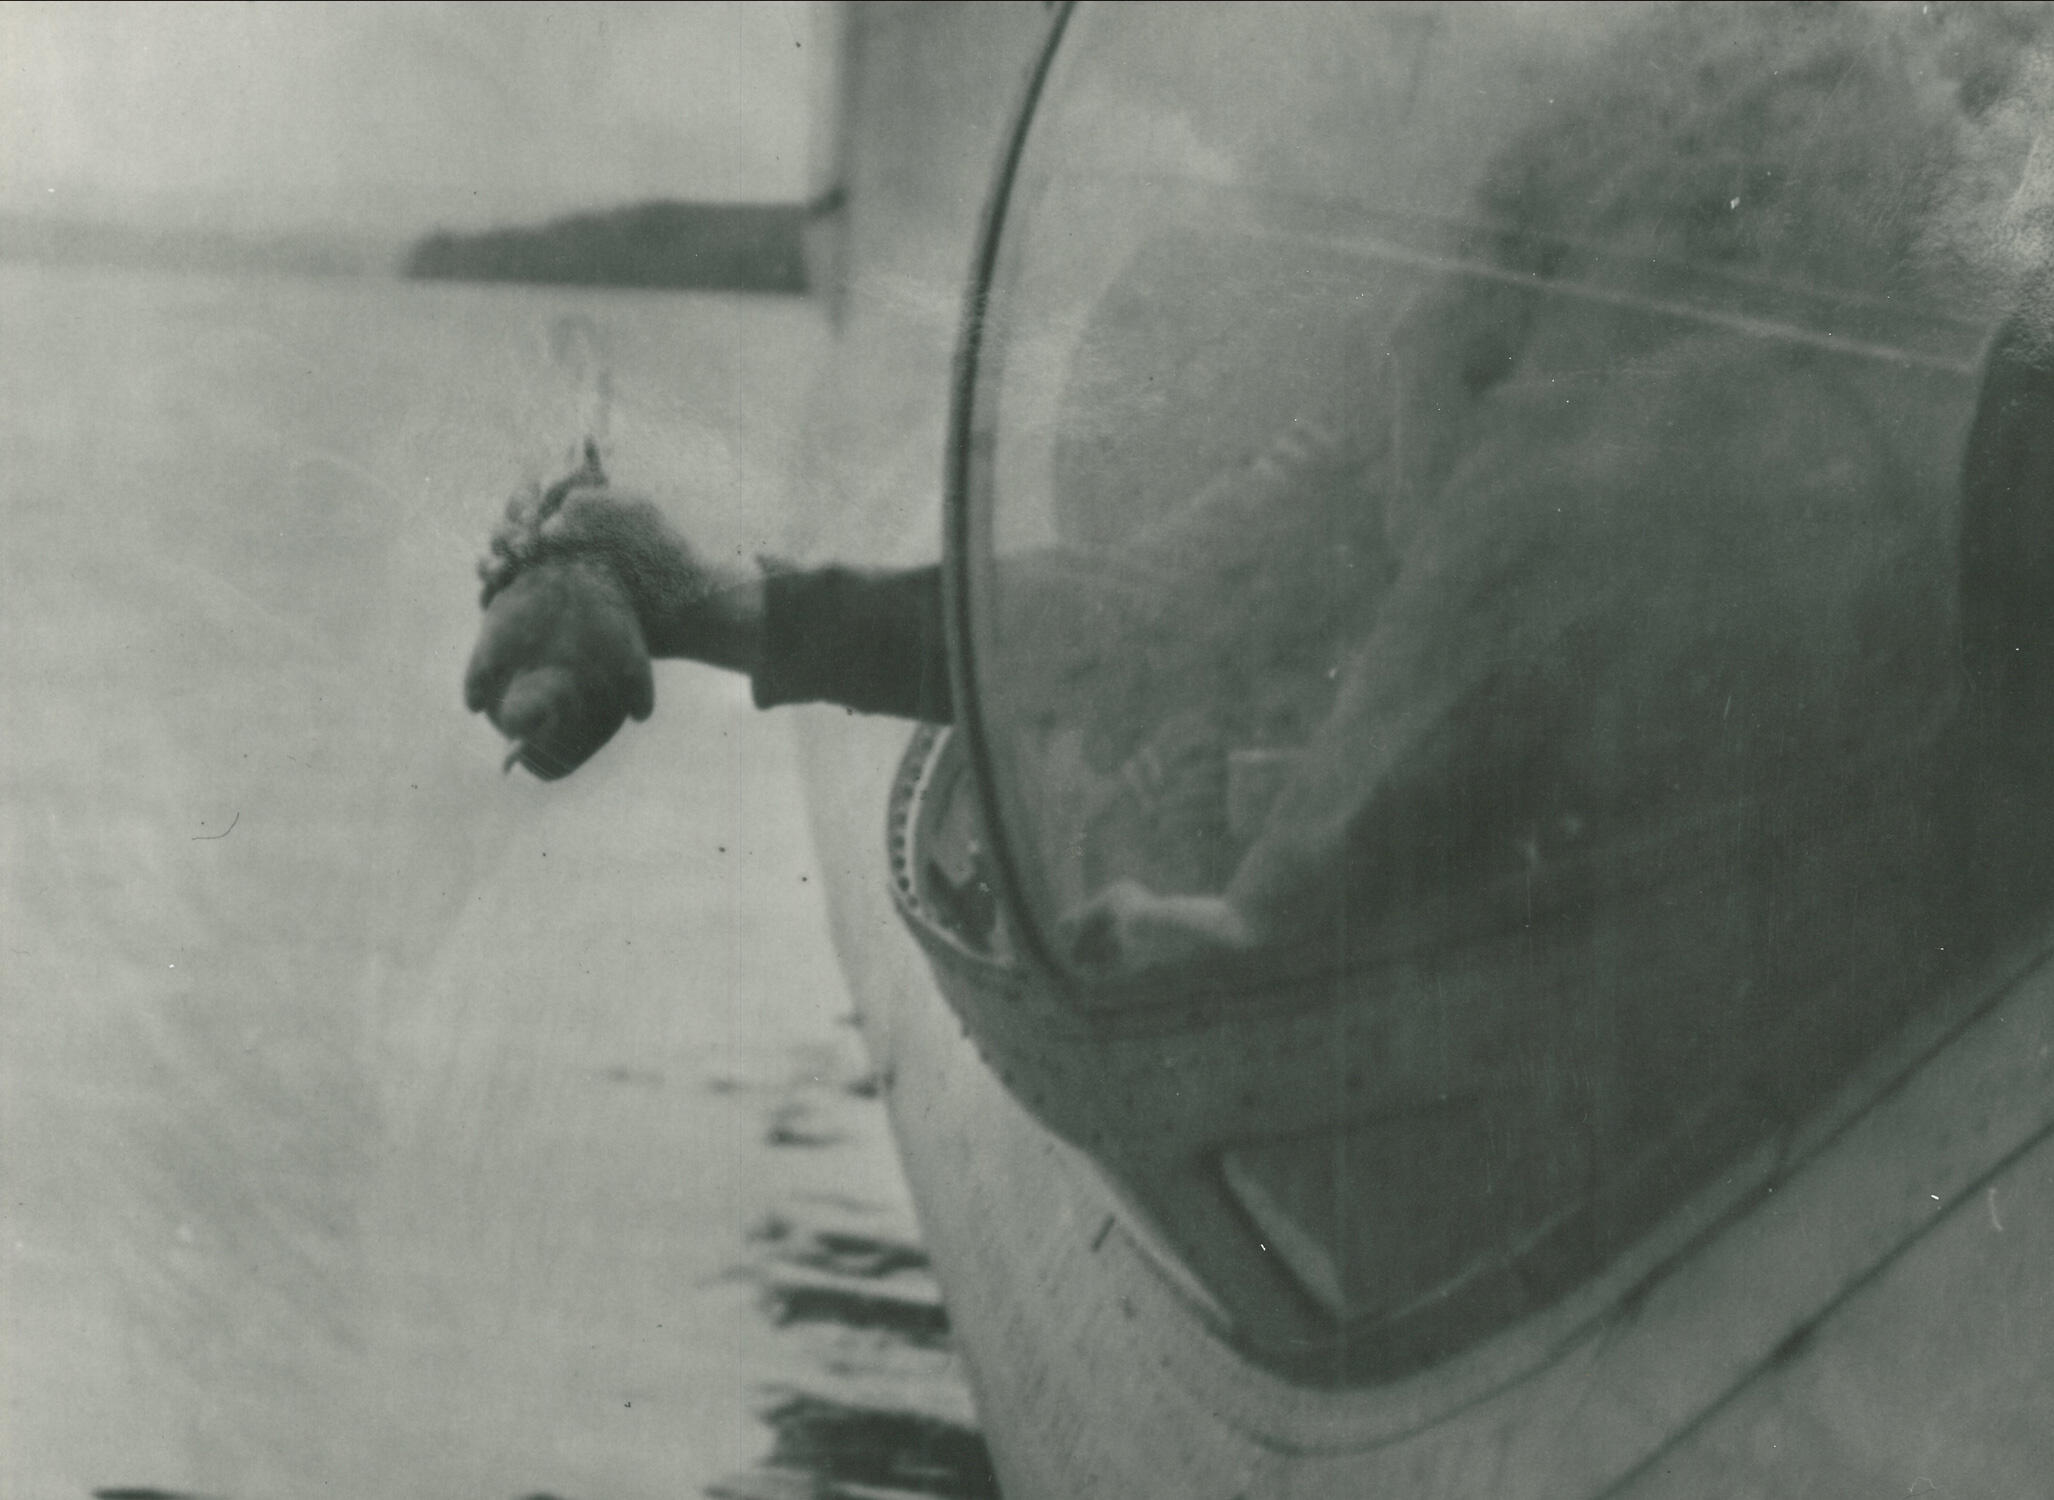 A pigeon is released from a Catalina flying boat. They were occasionally strapped into mini parachutes to ensure a safe landing. Often, coded intelligence messages were strapped to the birds' bodies. AR/BNPS